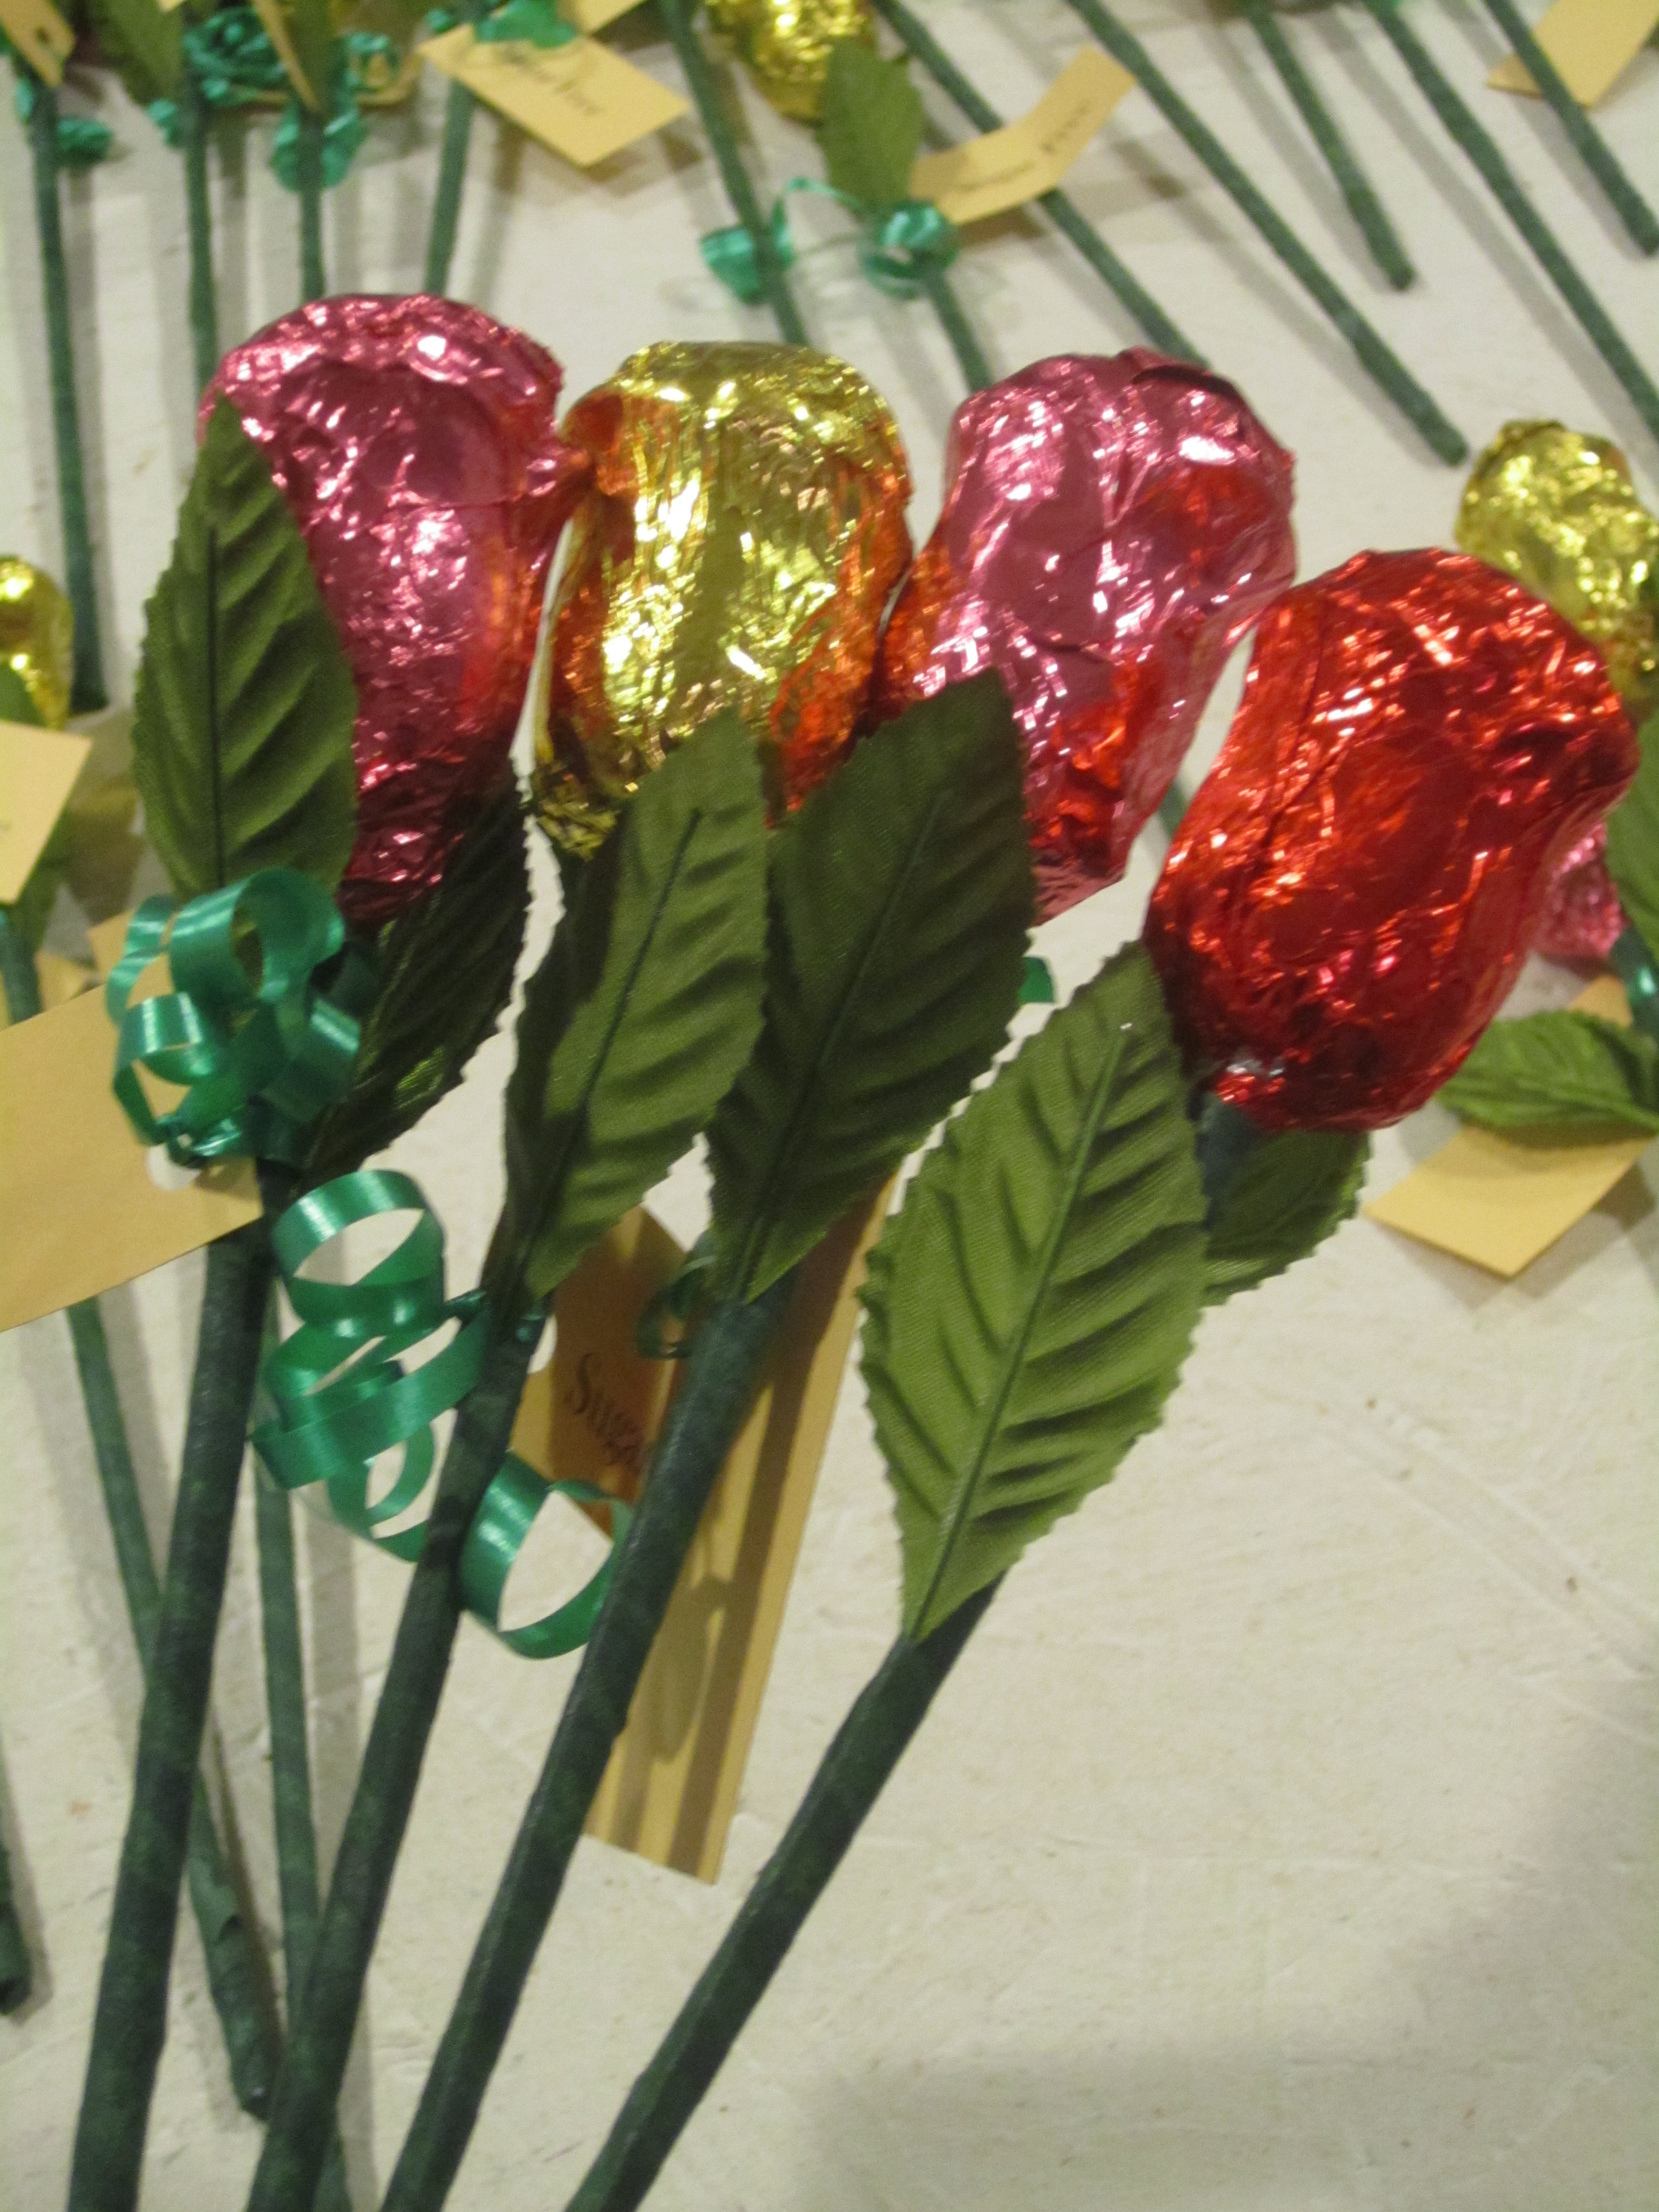 Sugar free valentines day gifts at diabetic candy milk chocolate quadruple long stem roses in red pink sugar free negle Image collections